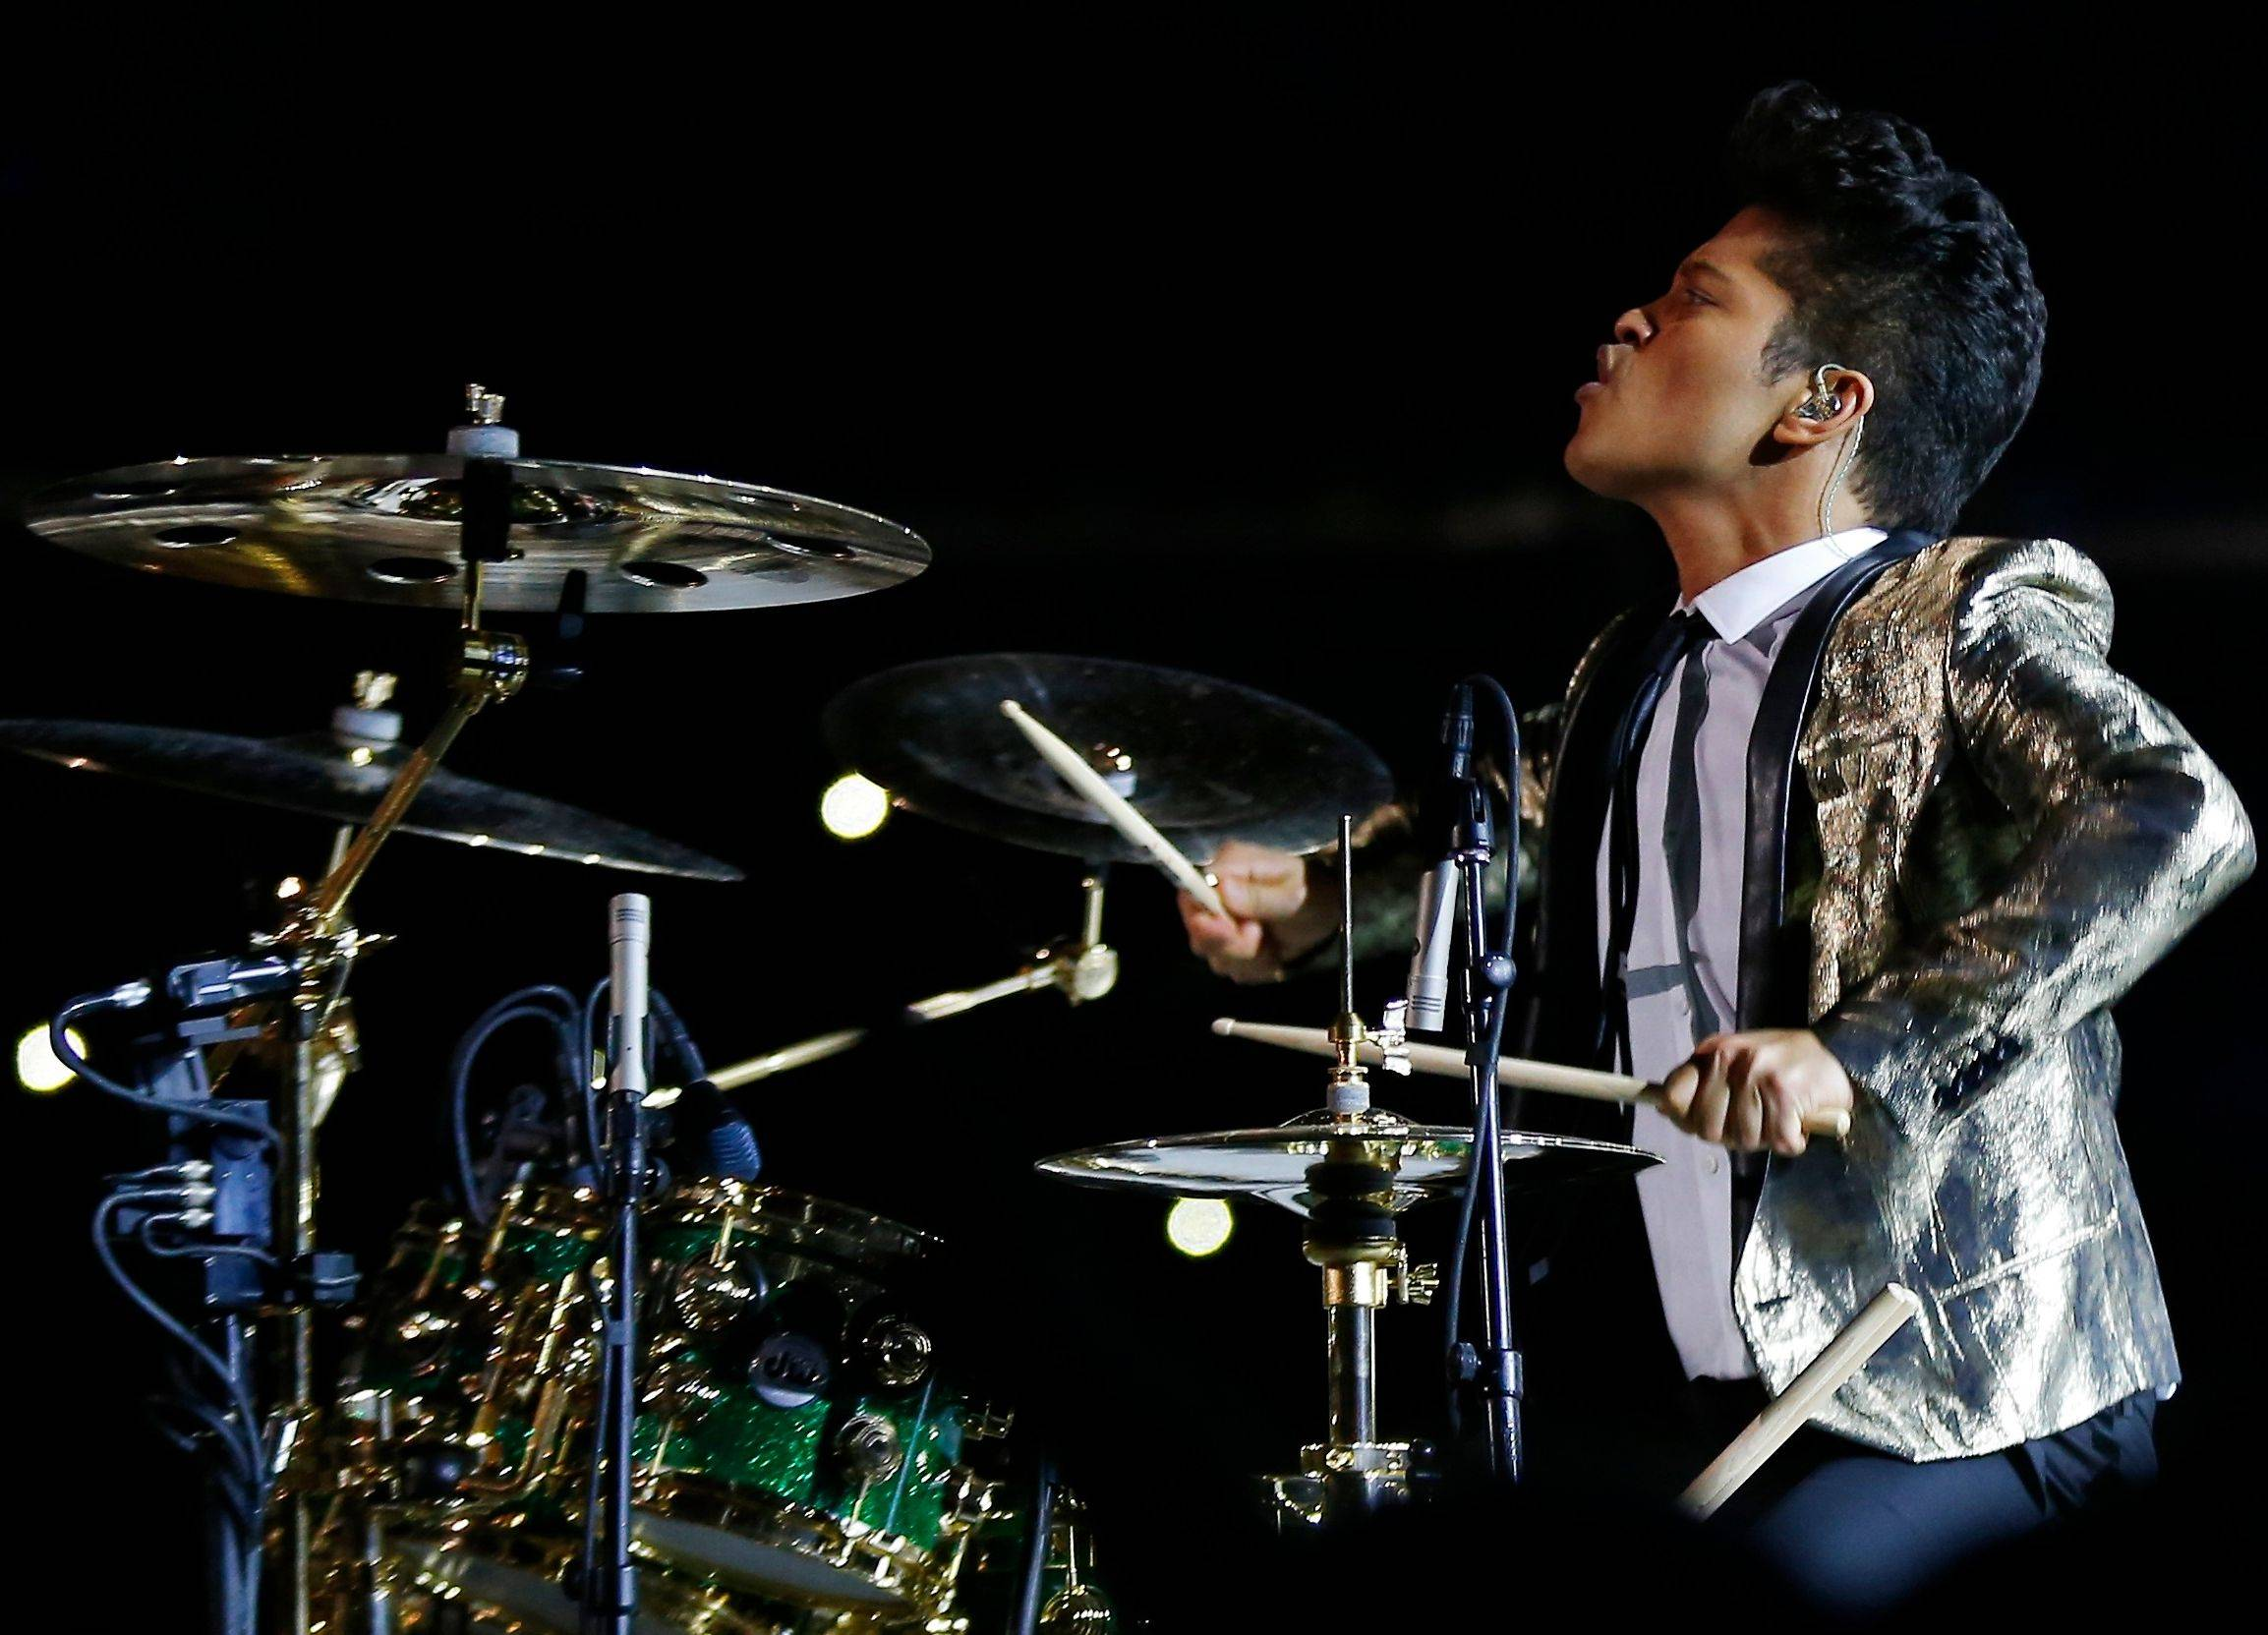 Bruno Mars performs during the halftime show of the NFL Super Bowl XLVIII football game Sunday in East Rutherford, N.J.